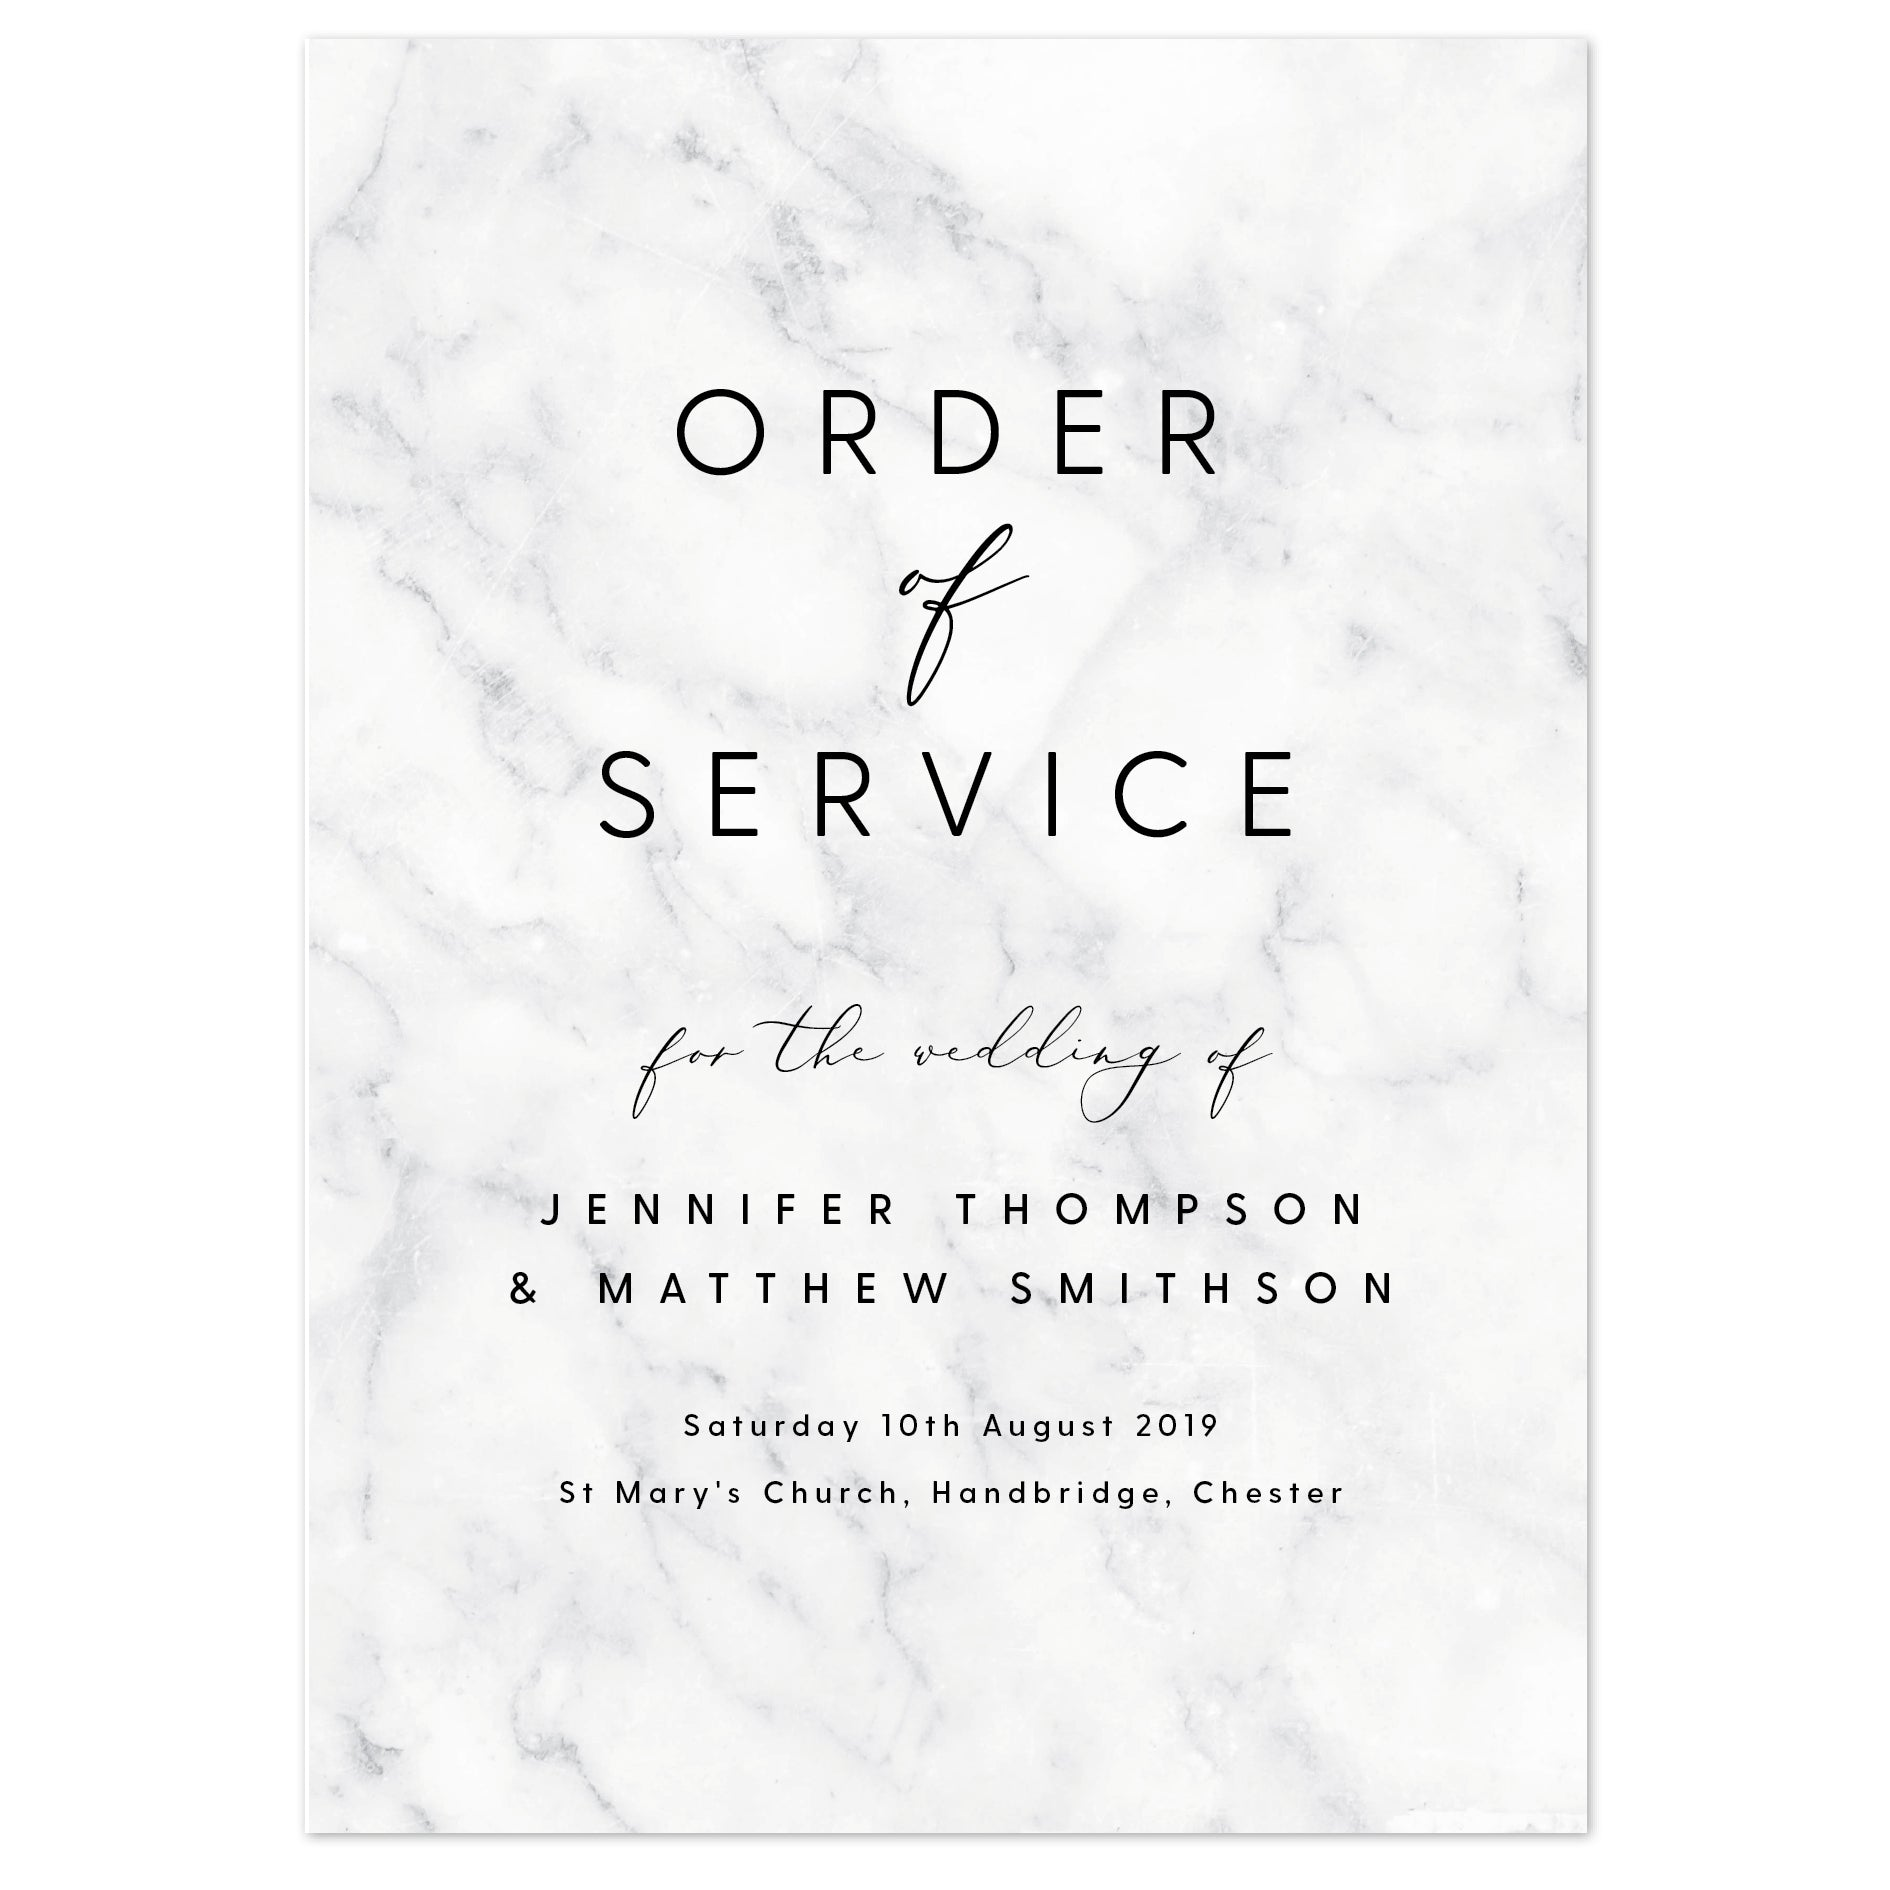 Monochrome marble wedding order of service